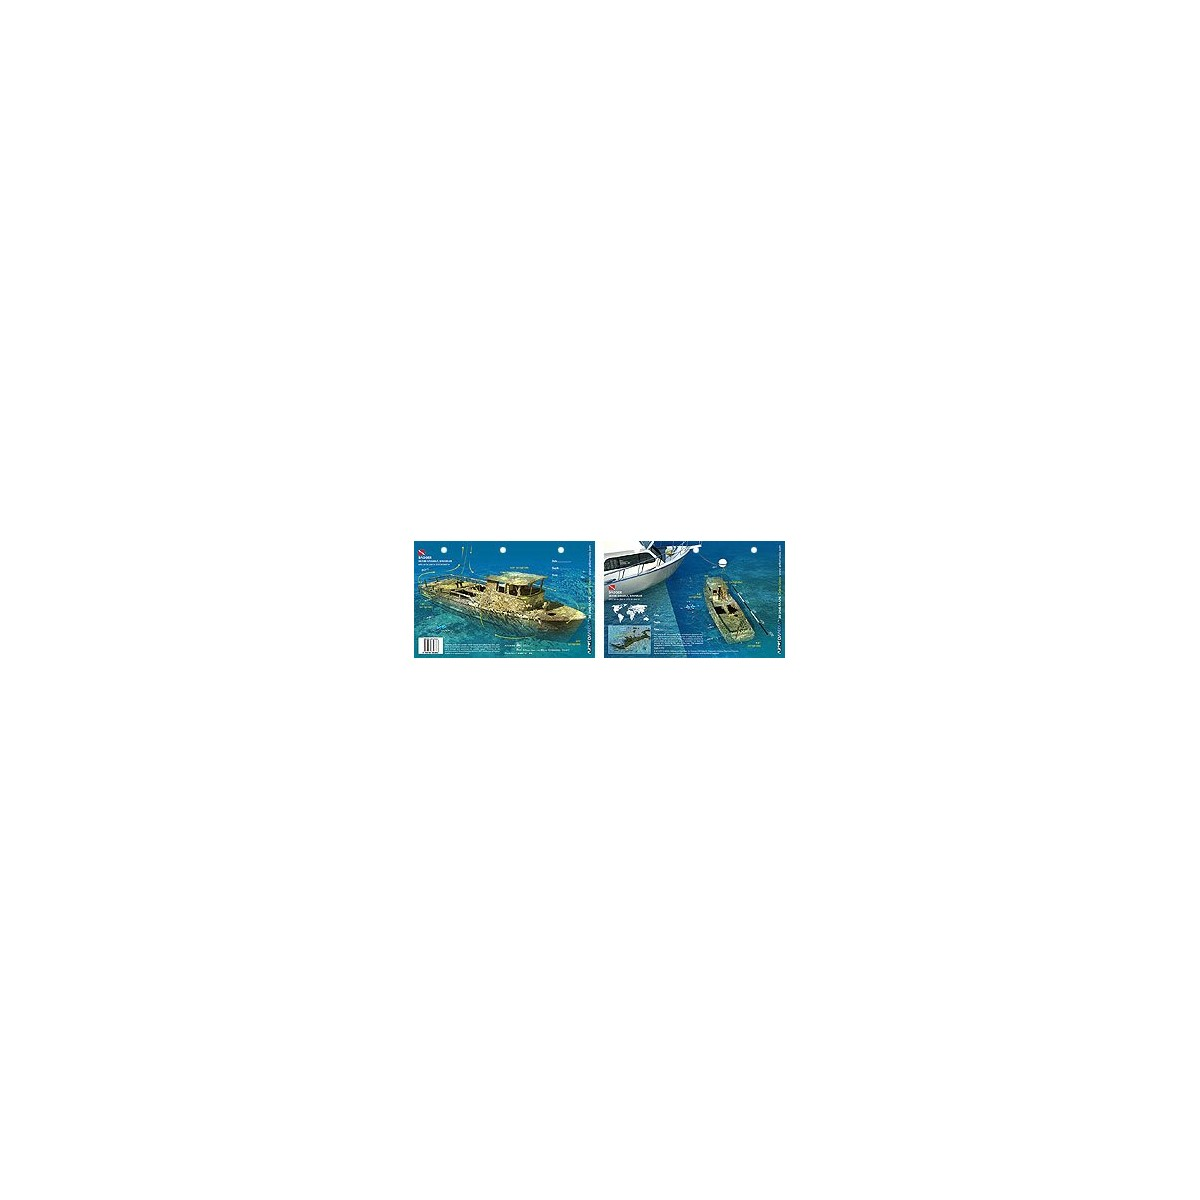 Badger Wreck in the Bahamas (8.5 x 5.5 Inches) (21.6 x 15cm) - New Art to Media Underwater Waterproof 3D Dive Site Map